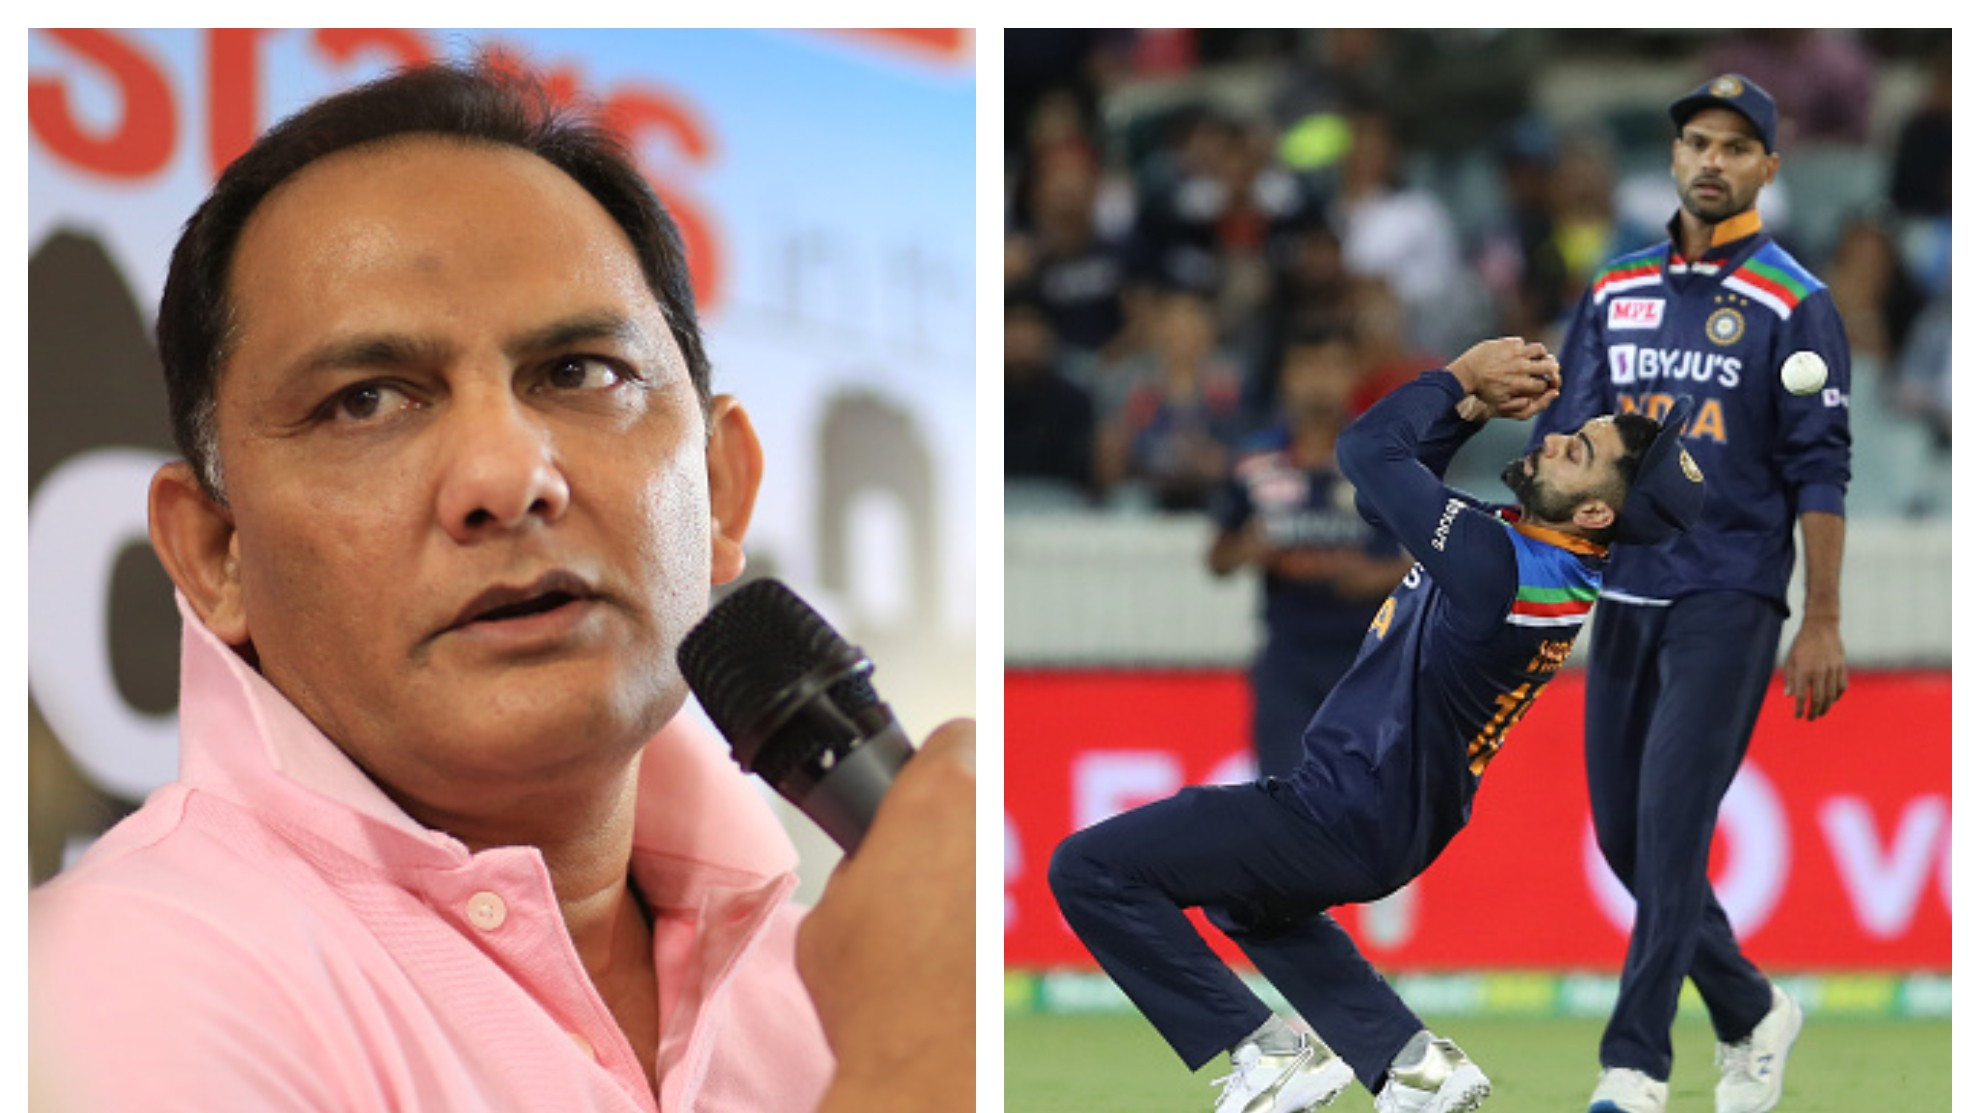 AUS v IND 2020-21: Azharuddin raises concern over India's repeated fielding errors